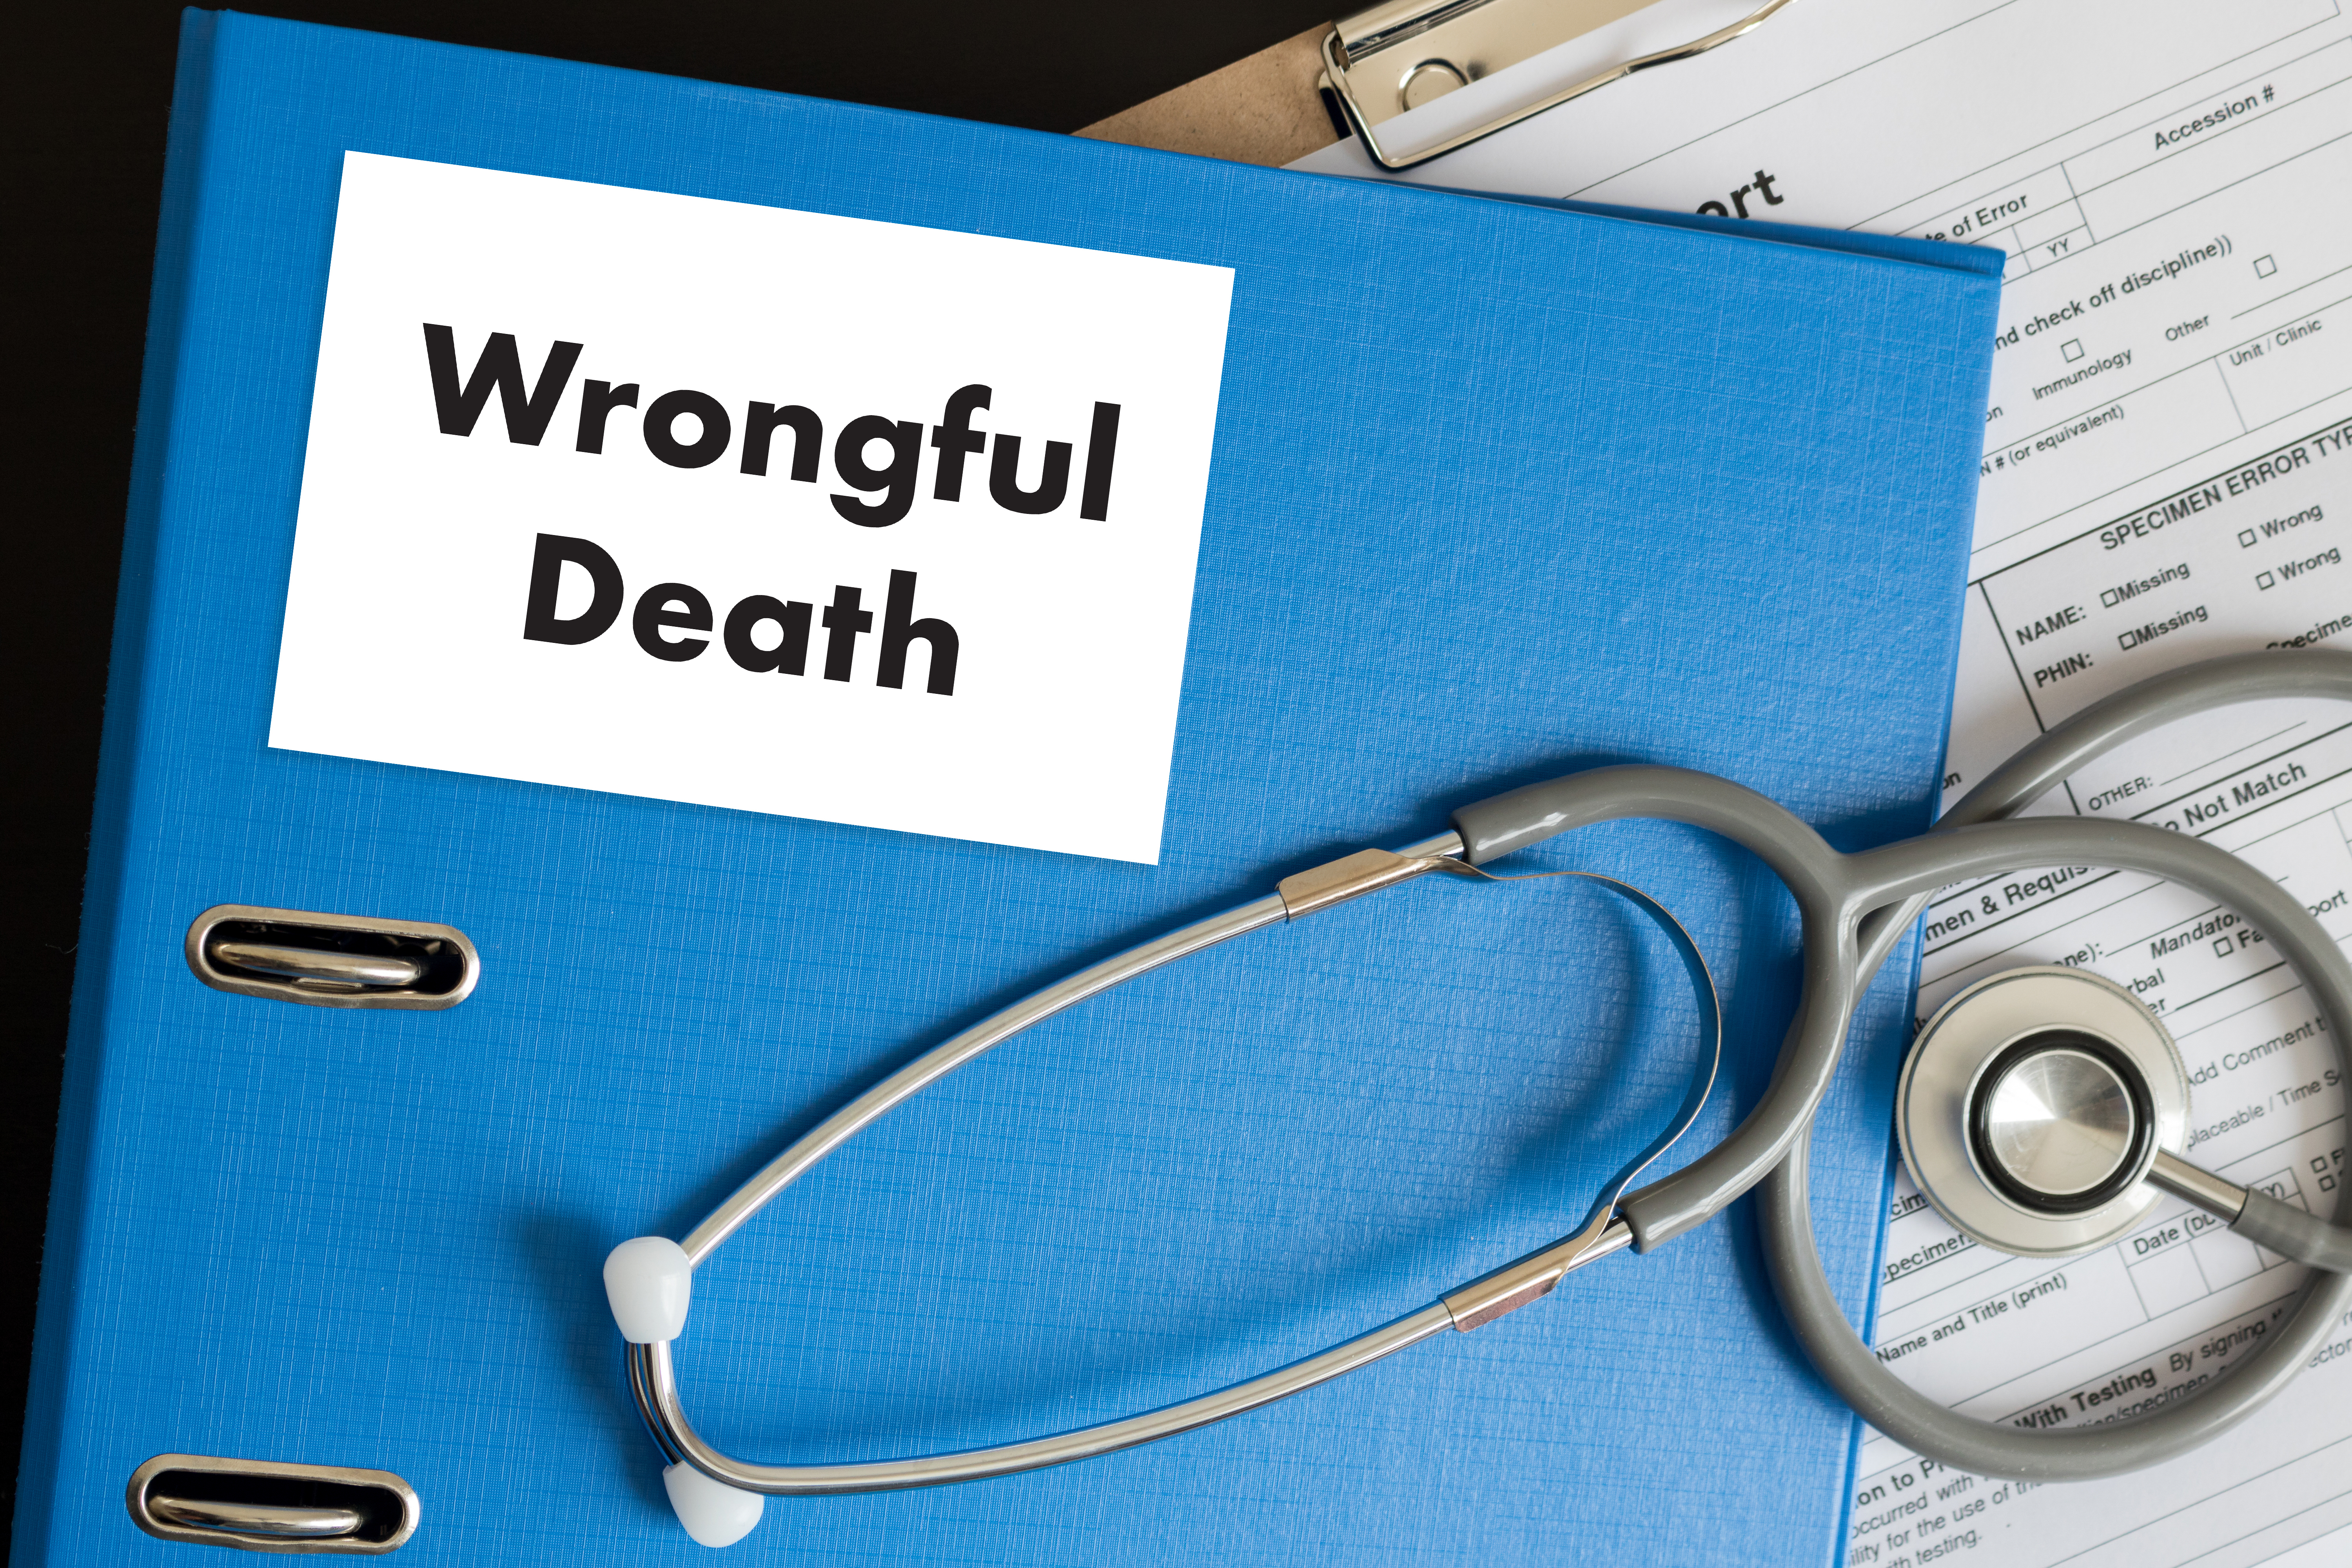 About the Florida Wrongful Death Statute